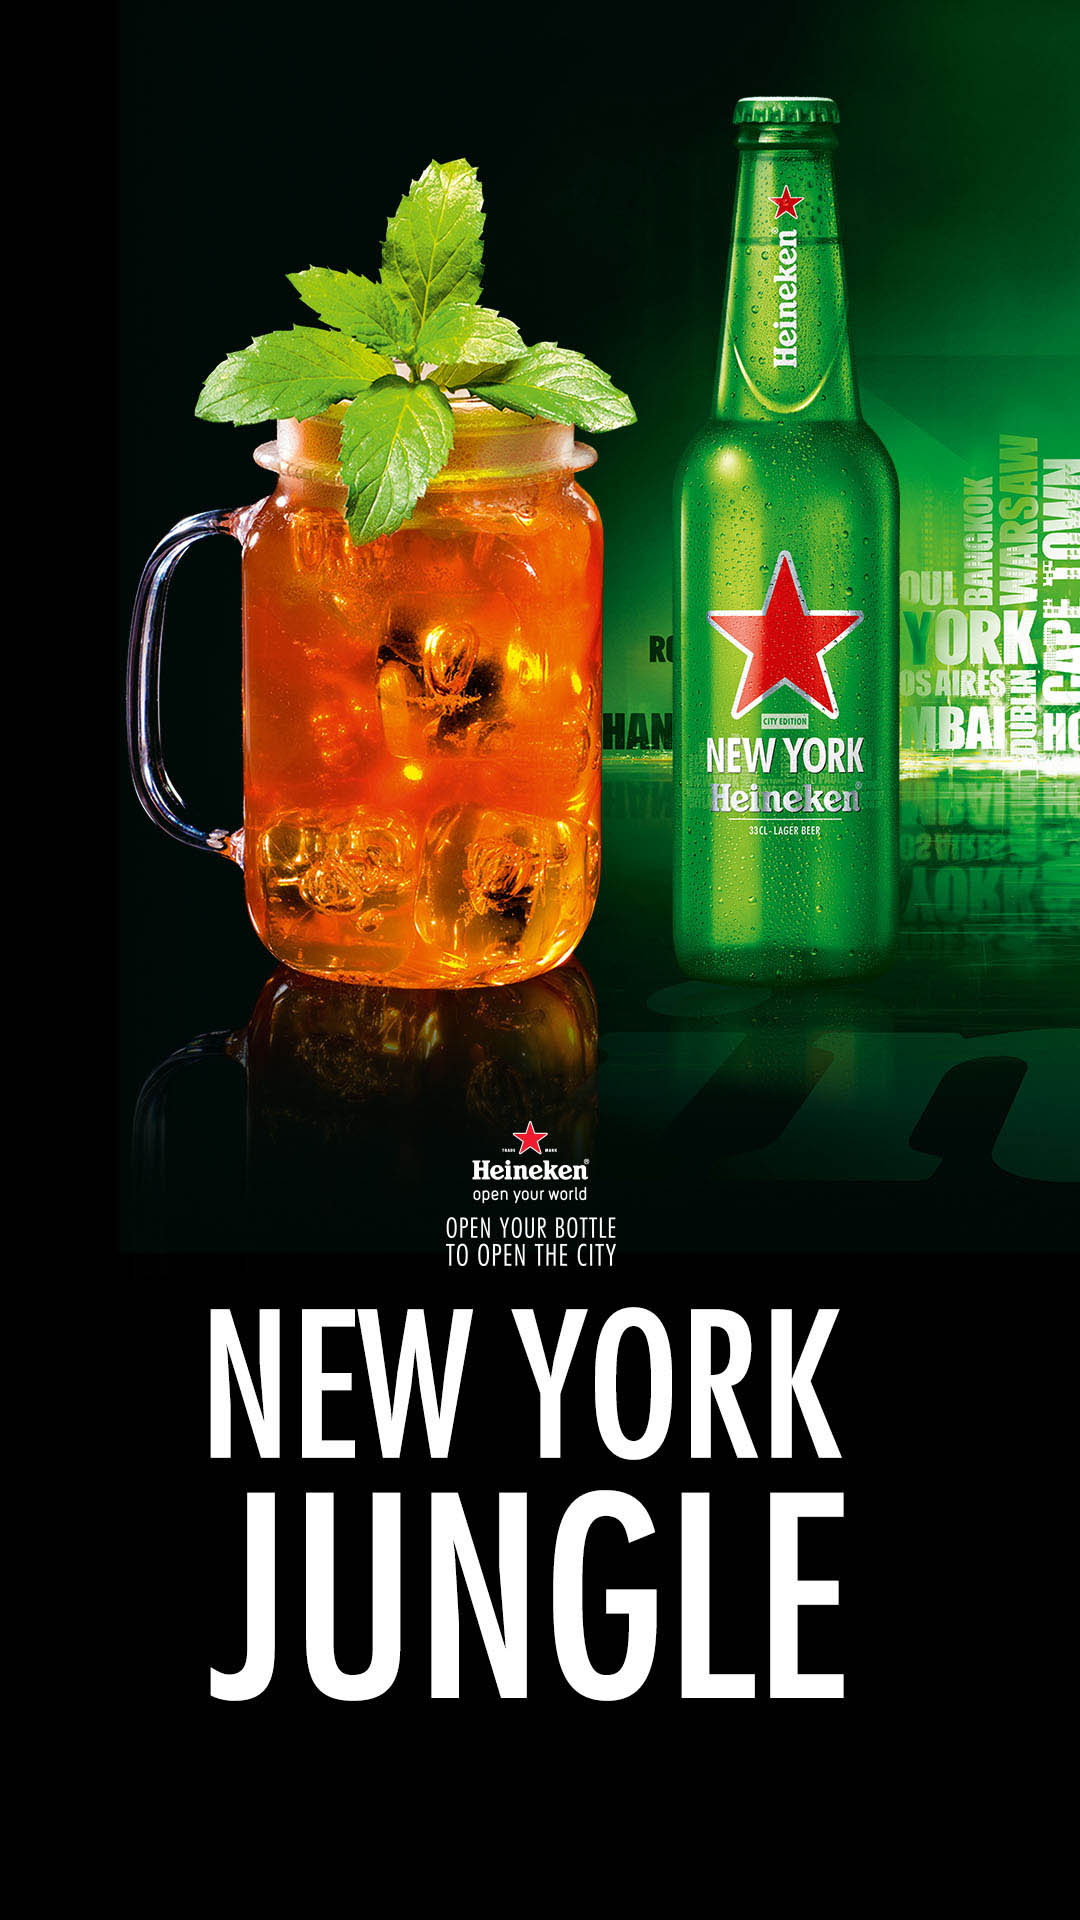 New York Jungle Cocktail Heineken